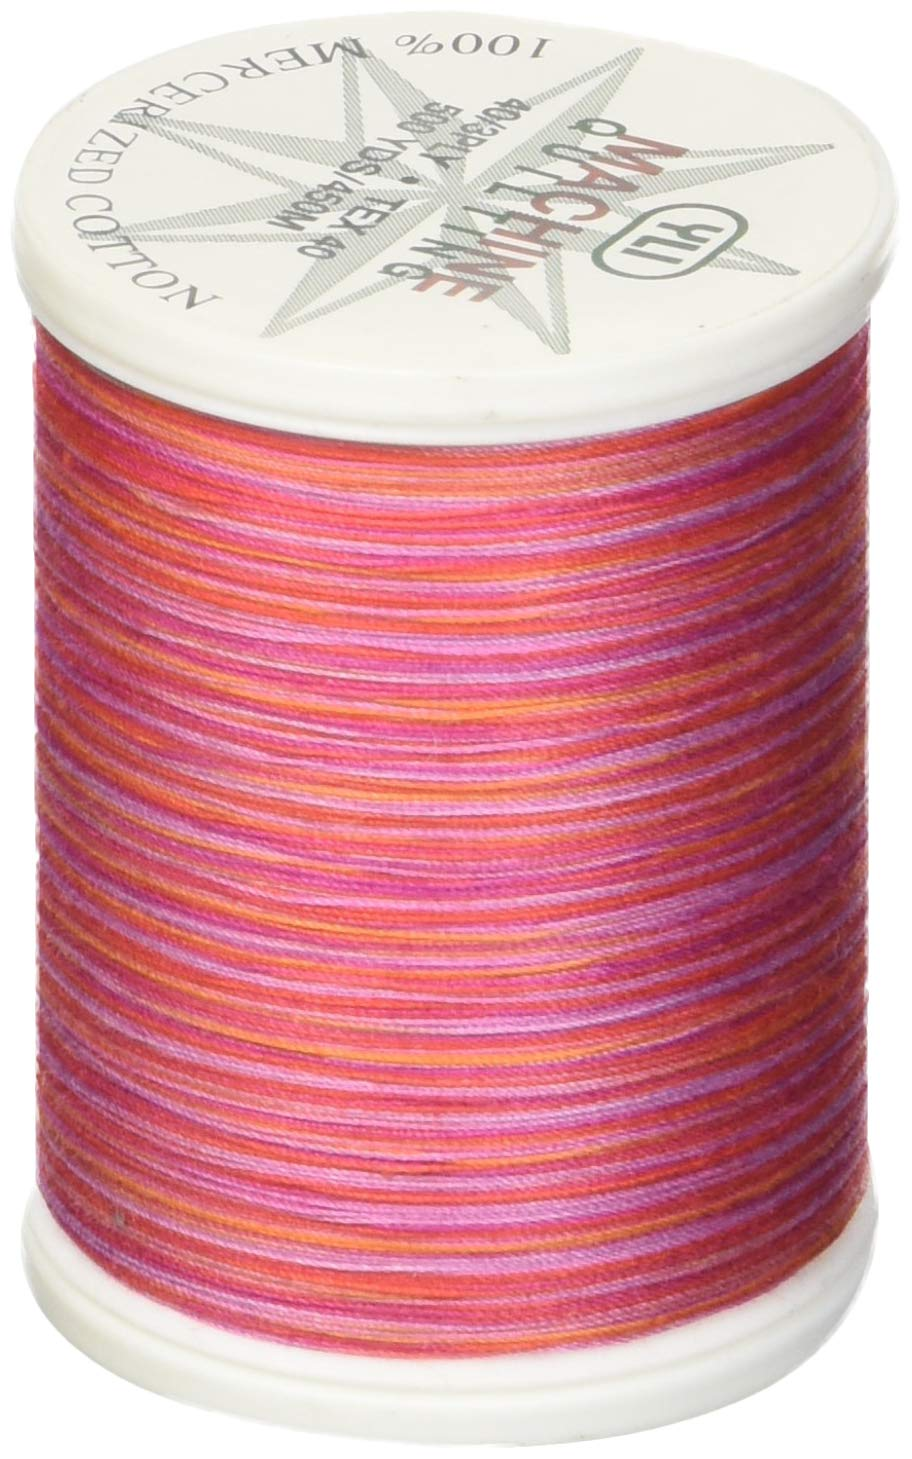 500 yd California Poppy YLI 24450-V75 3-Ply 40wt T-40 Cotton Quilting Variegated Thread